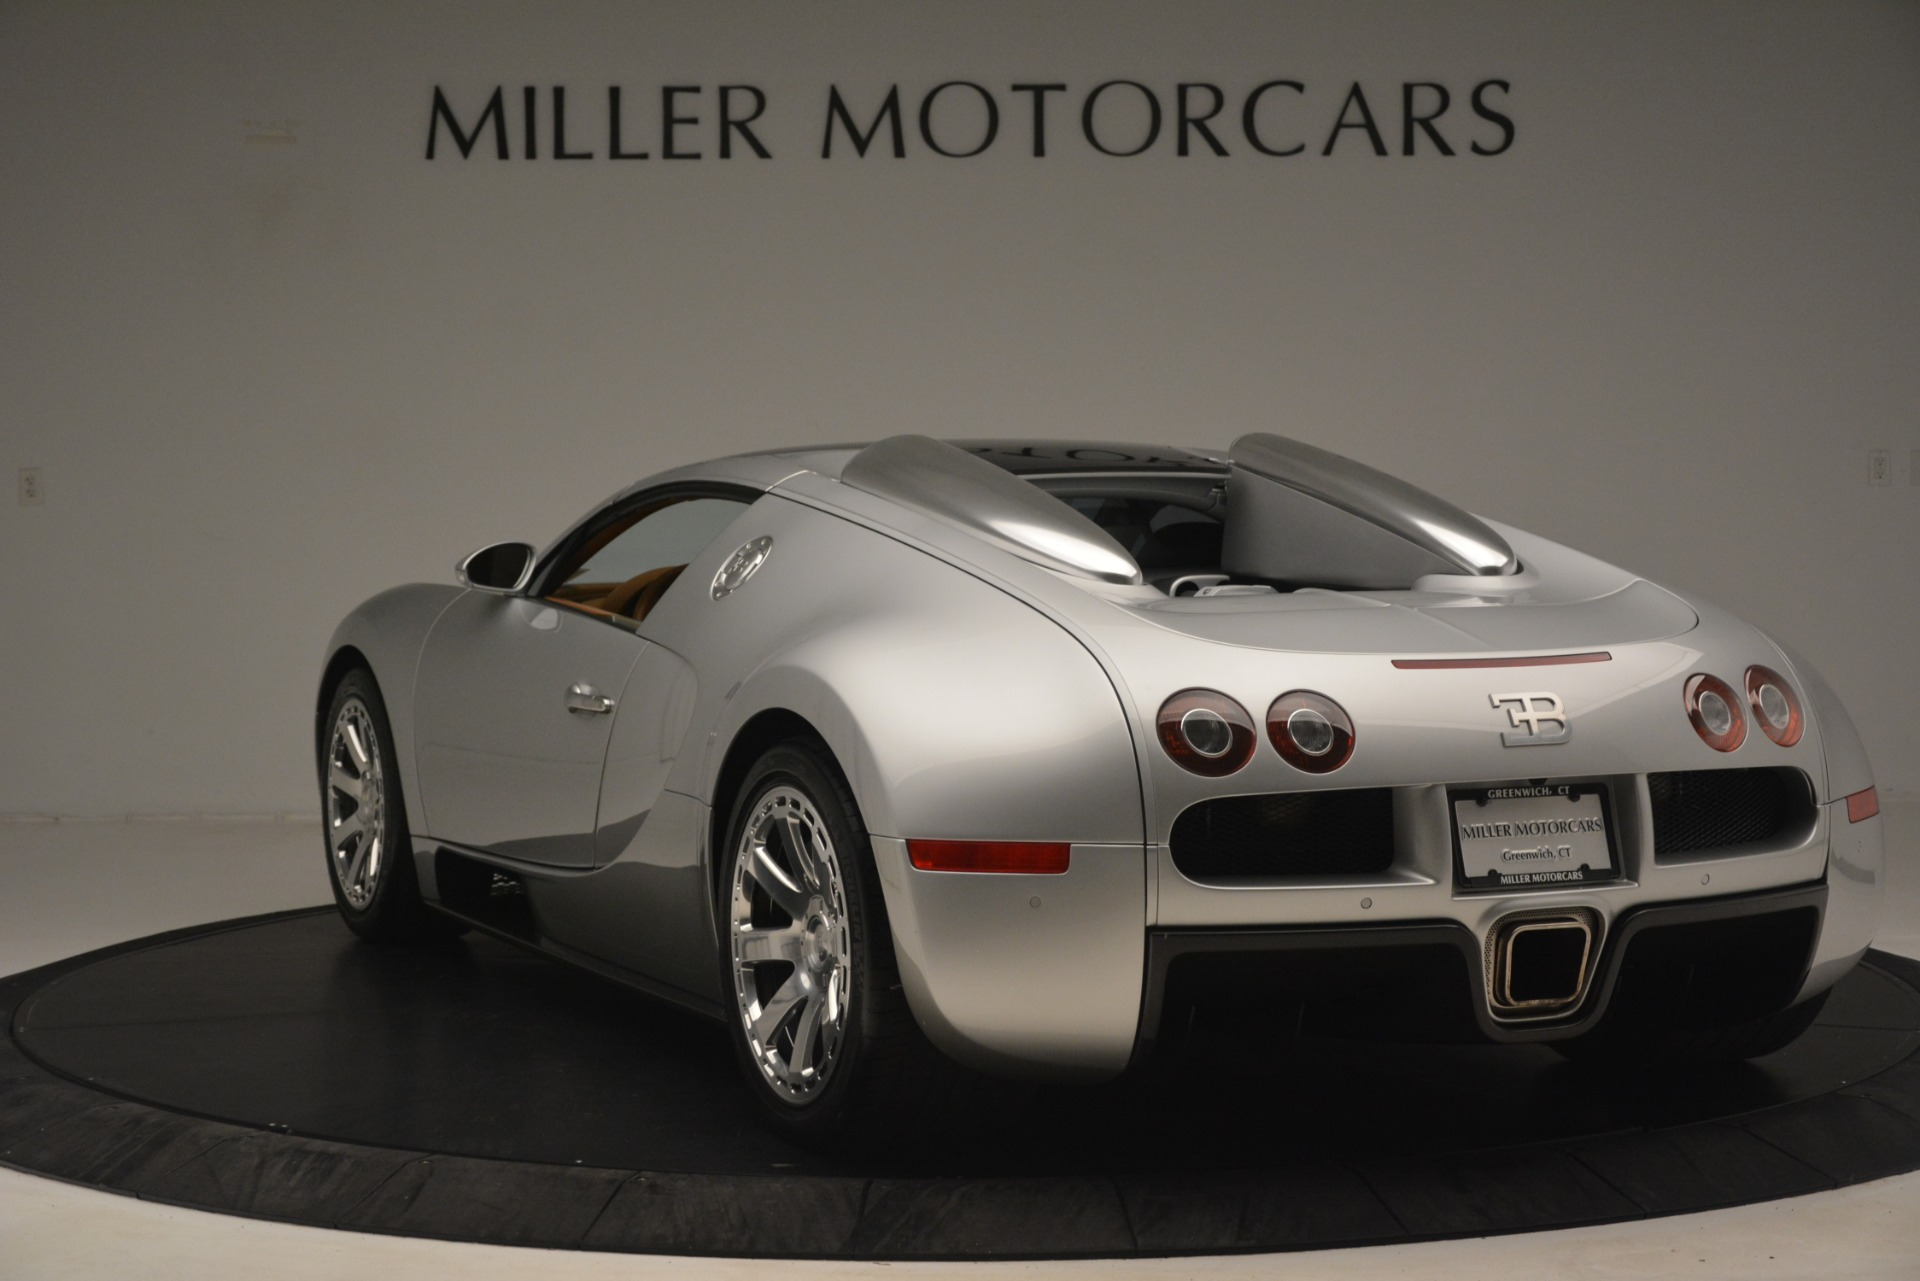 Used 2010 Bugatti Veyron 16.4 Grand Sport For Sale In Westport, CT 3159_p15